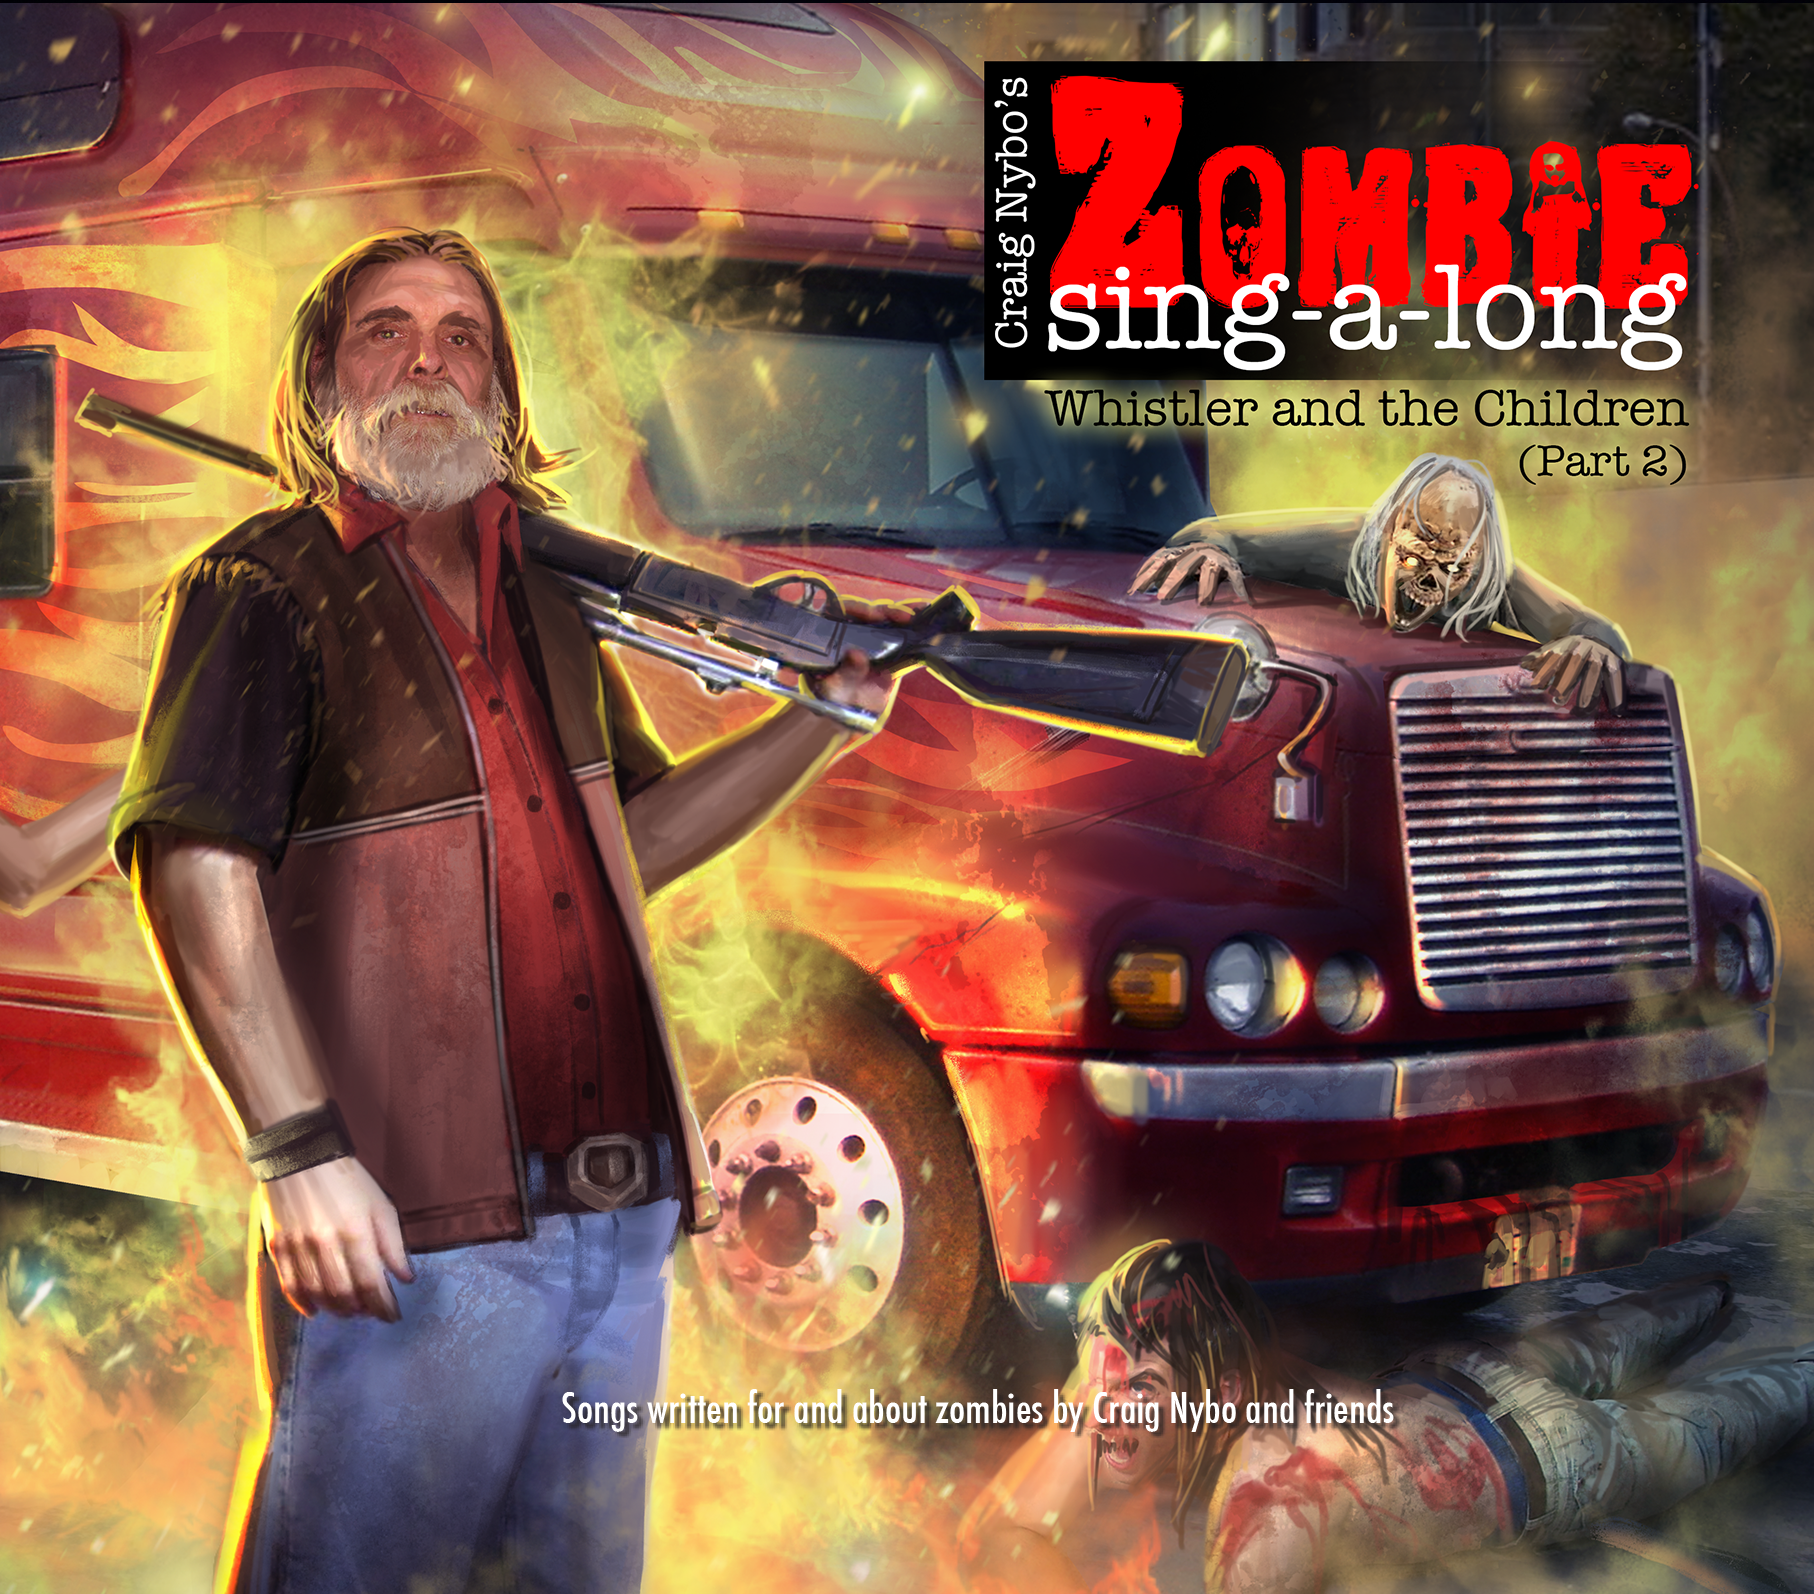 CD - Craig Nybo: Zombie Sing-a-Long: Whistler and the Children (Part 2)